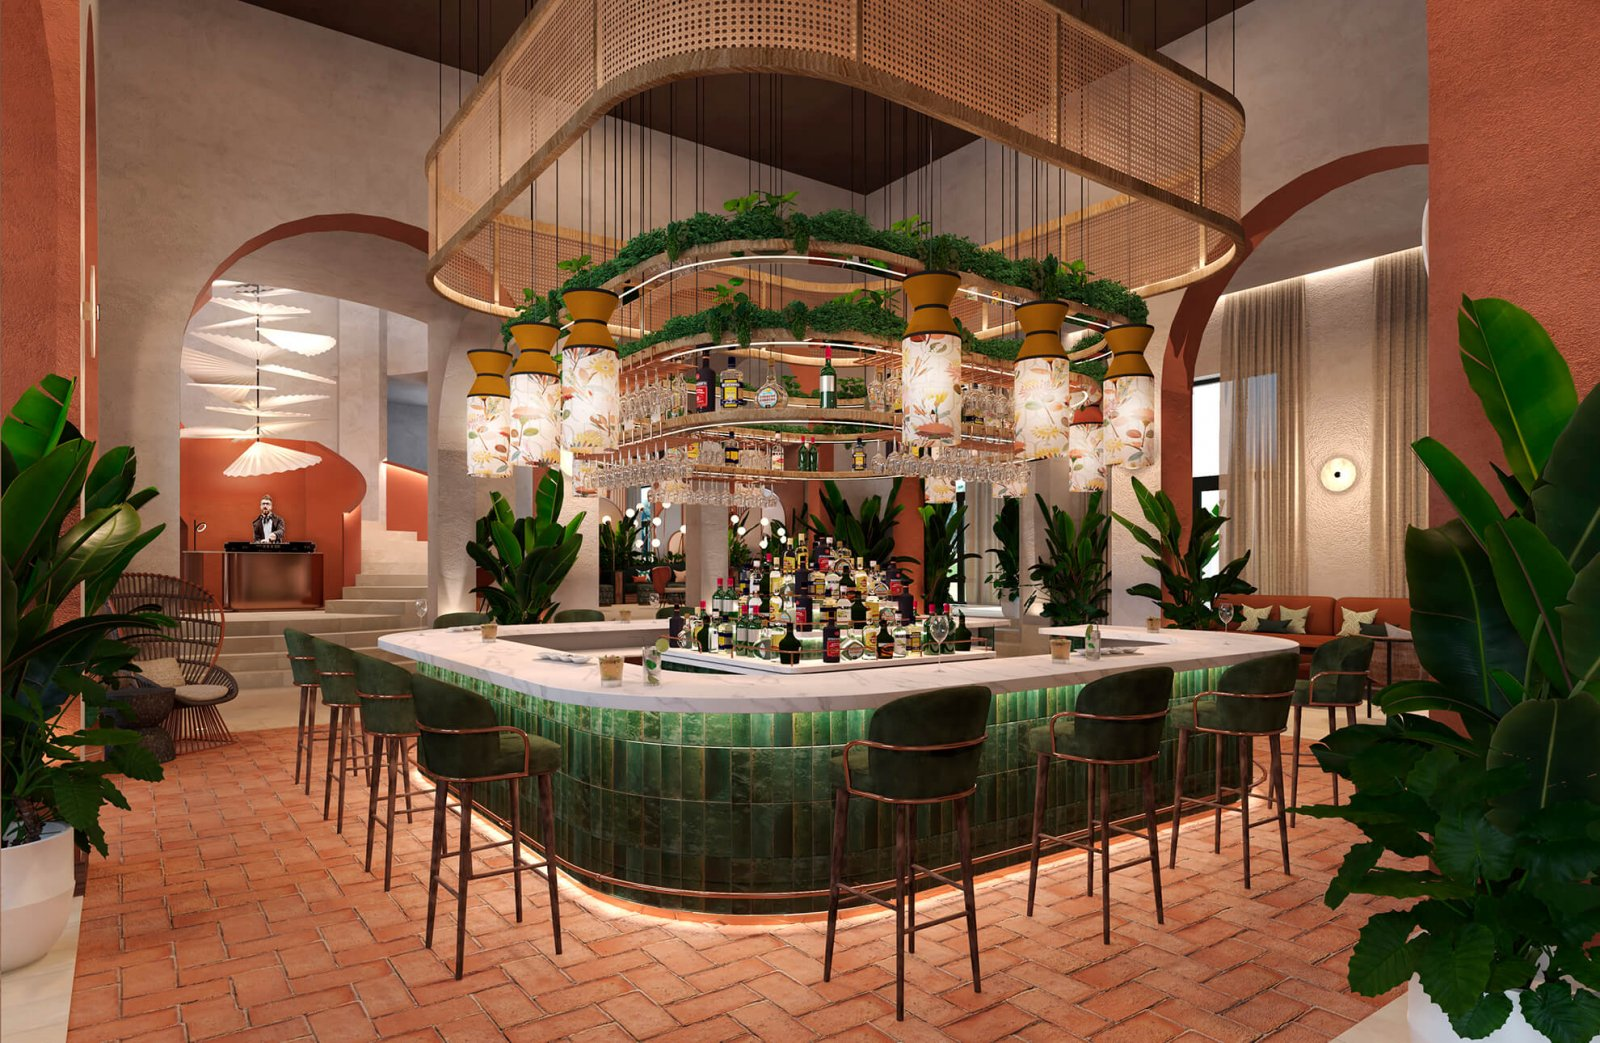 Another view of the common areas with plants and some liqueur of the Sotogrande